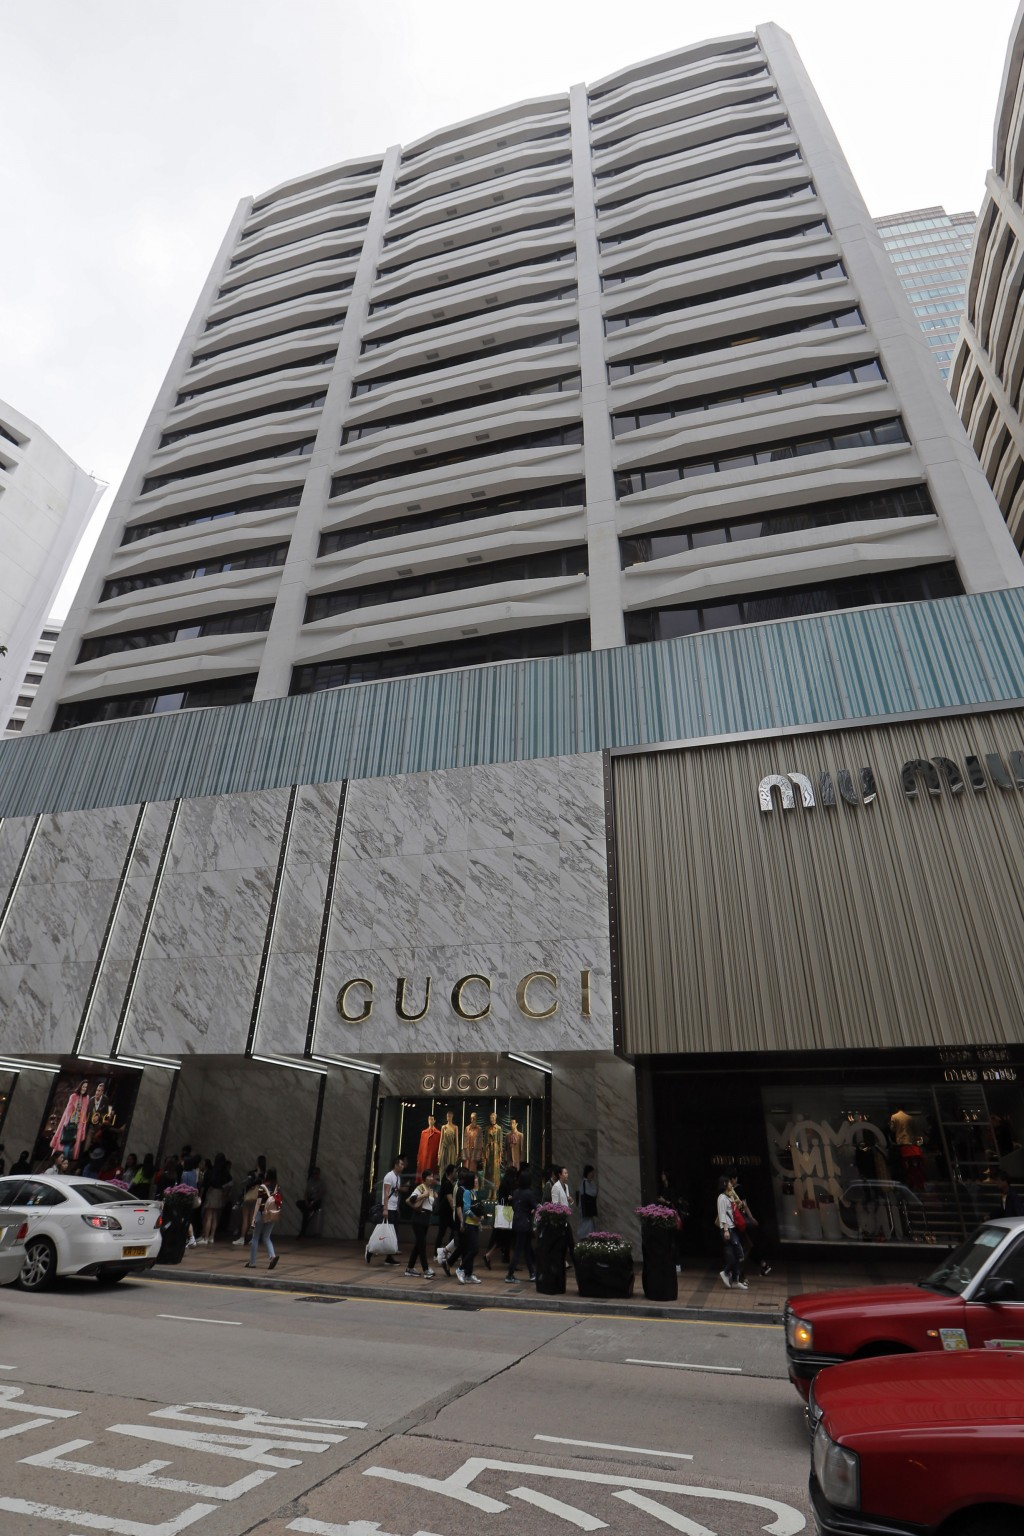 This Thursday, March 21, 2019 photo shows the exterior of the Wharf T&T Centre building in Hong Kong. The building was allegedly the home of NPH Inves